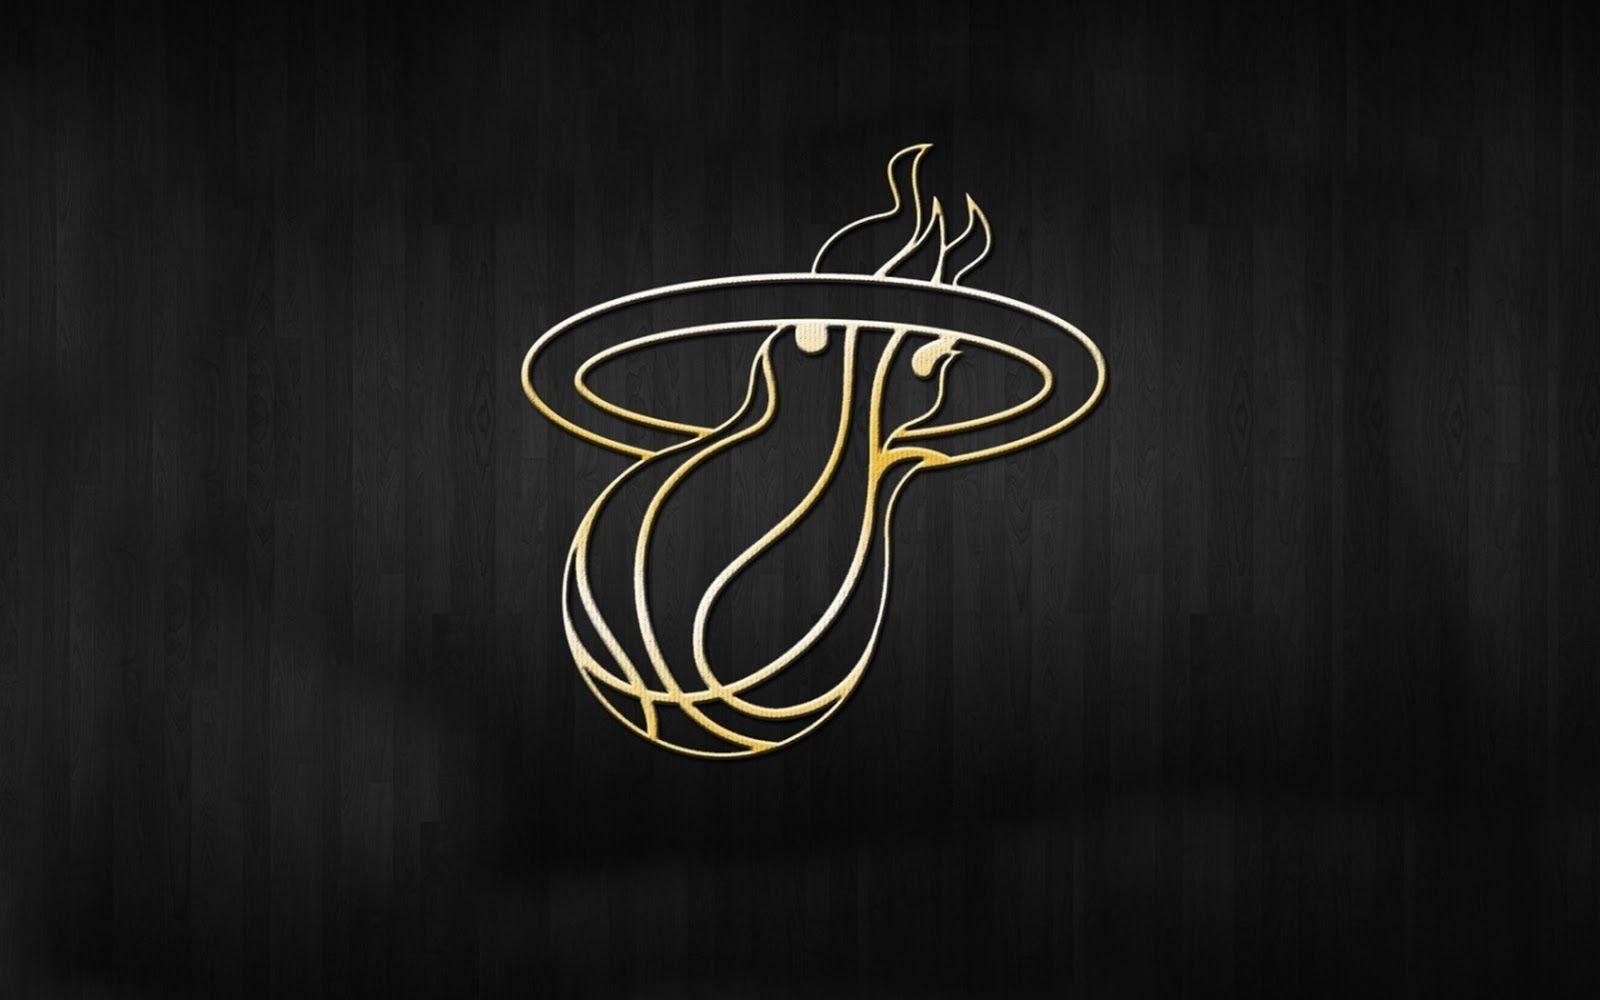 Miami heat wallpapers wallpaper cave - Miami heat wallpaper android download ...